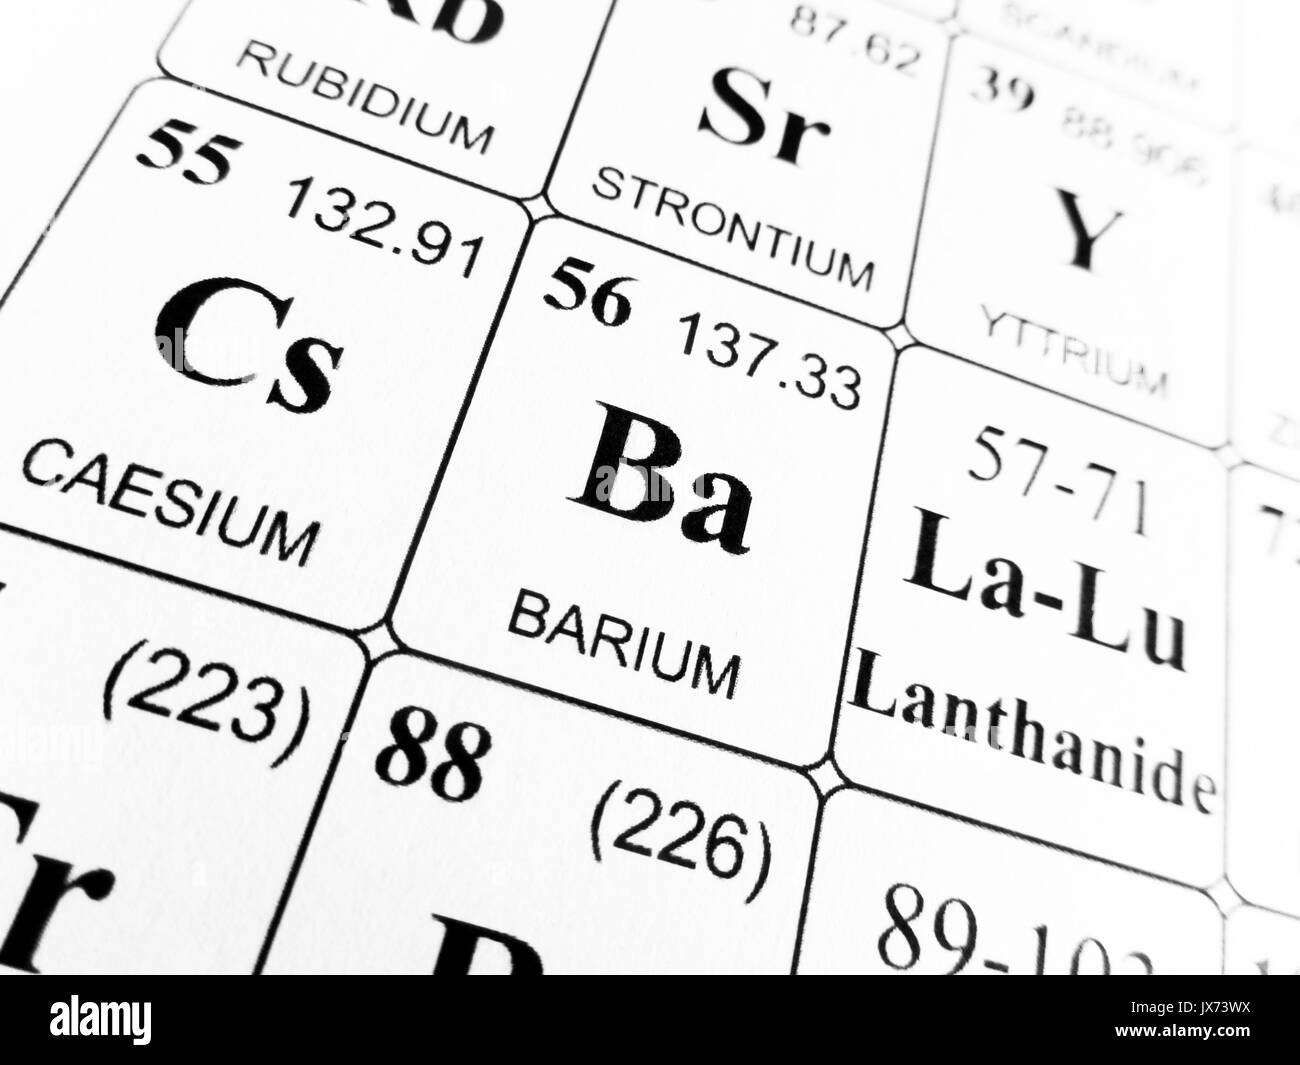 Barium on the periodic table of the elements stock photo royalty barium on the periodic table of the elements gamestrikefo Gallery